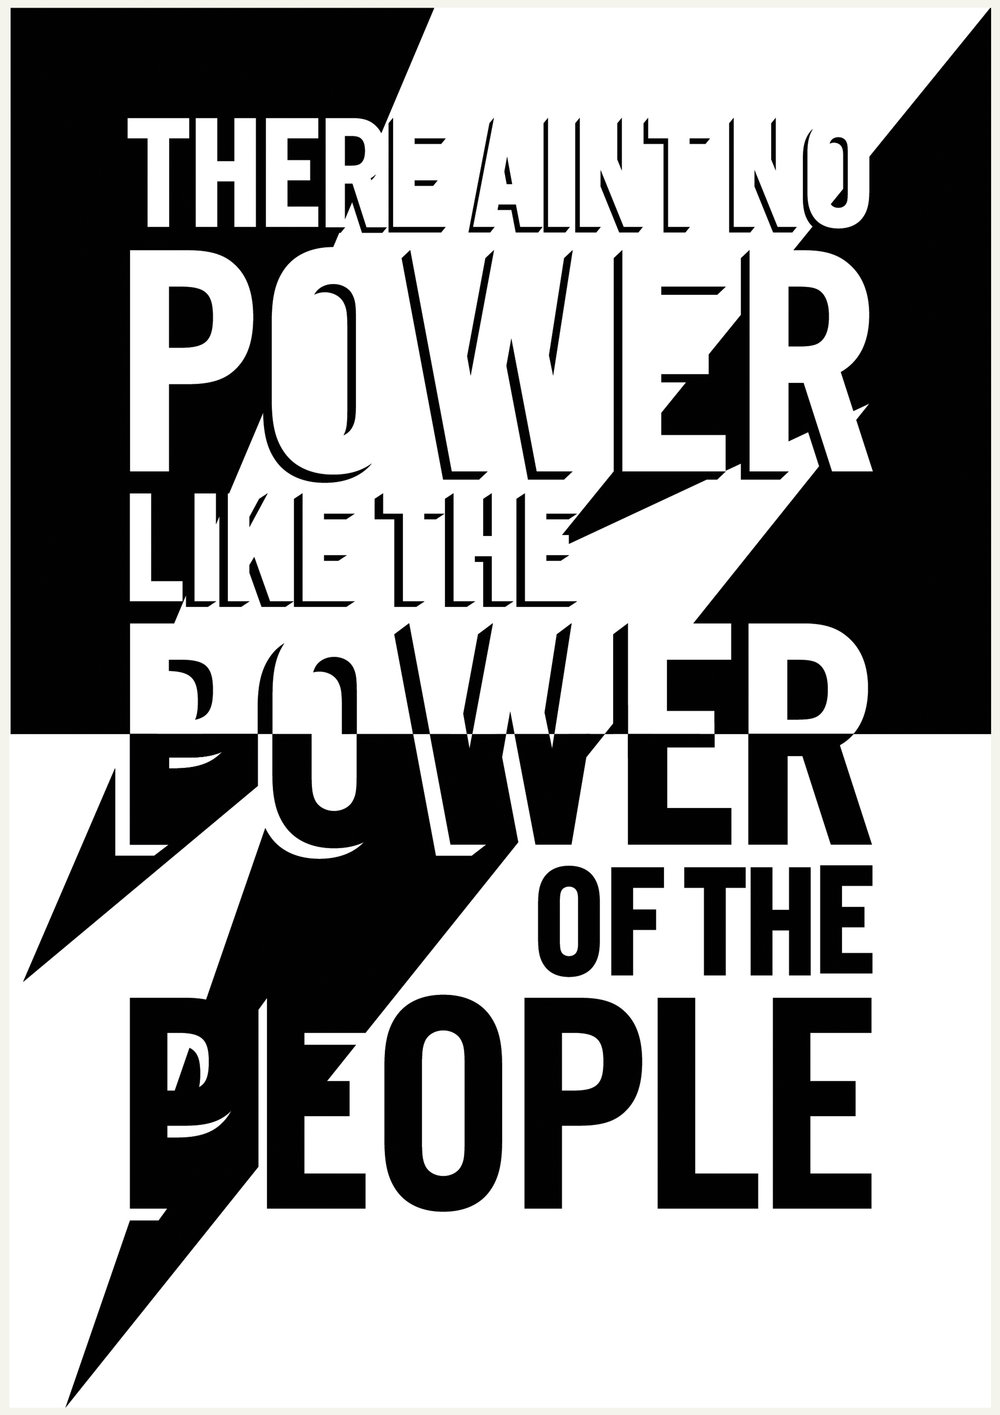 POWER - 1 colour screen print A3 200gsm recycled art paperDesigned in partnership with Some Voices Choir. Created for their spring 2018 gig at the Copperbox Arena London - Save Our Souls; The Ultimate End of the World Party.100% of profits from the sale of this print go to the event's partnering charity Help Refugees.http://ninetyfiveprints.com/